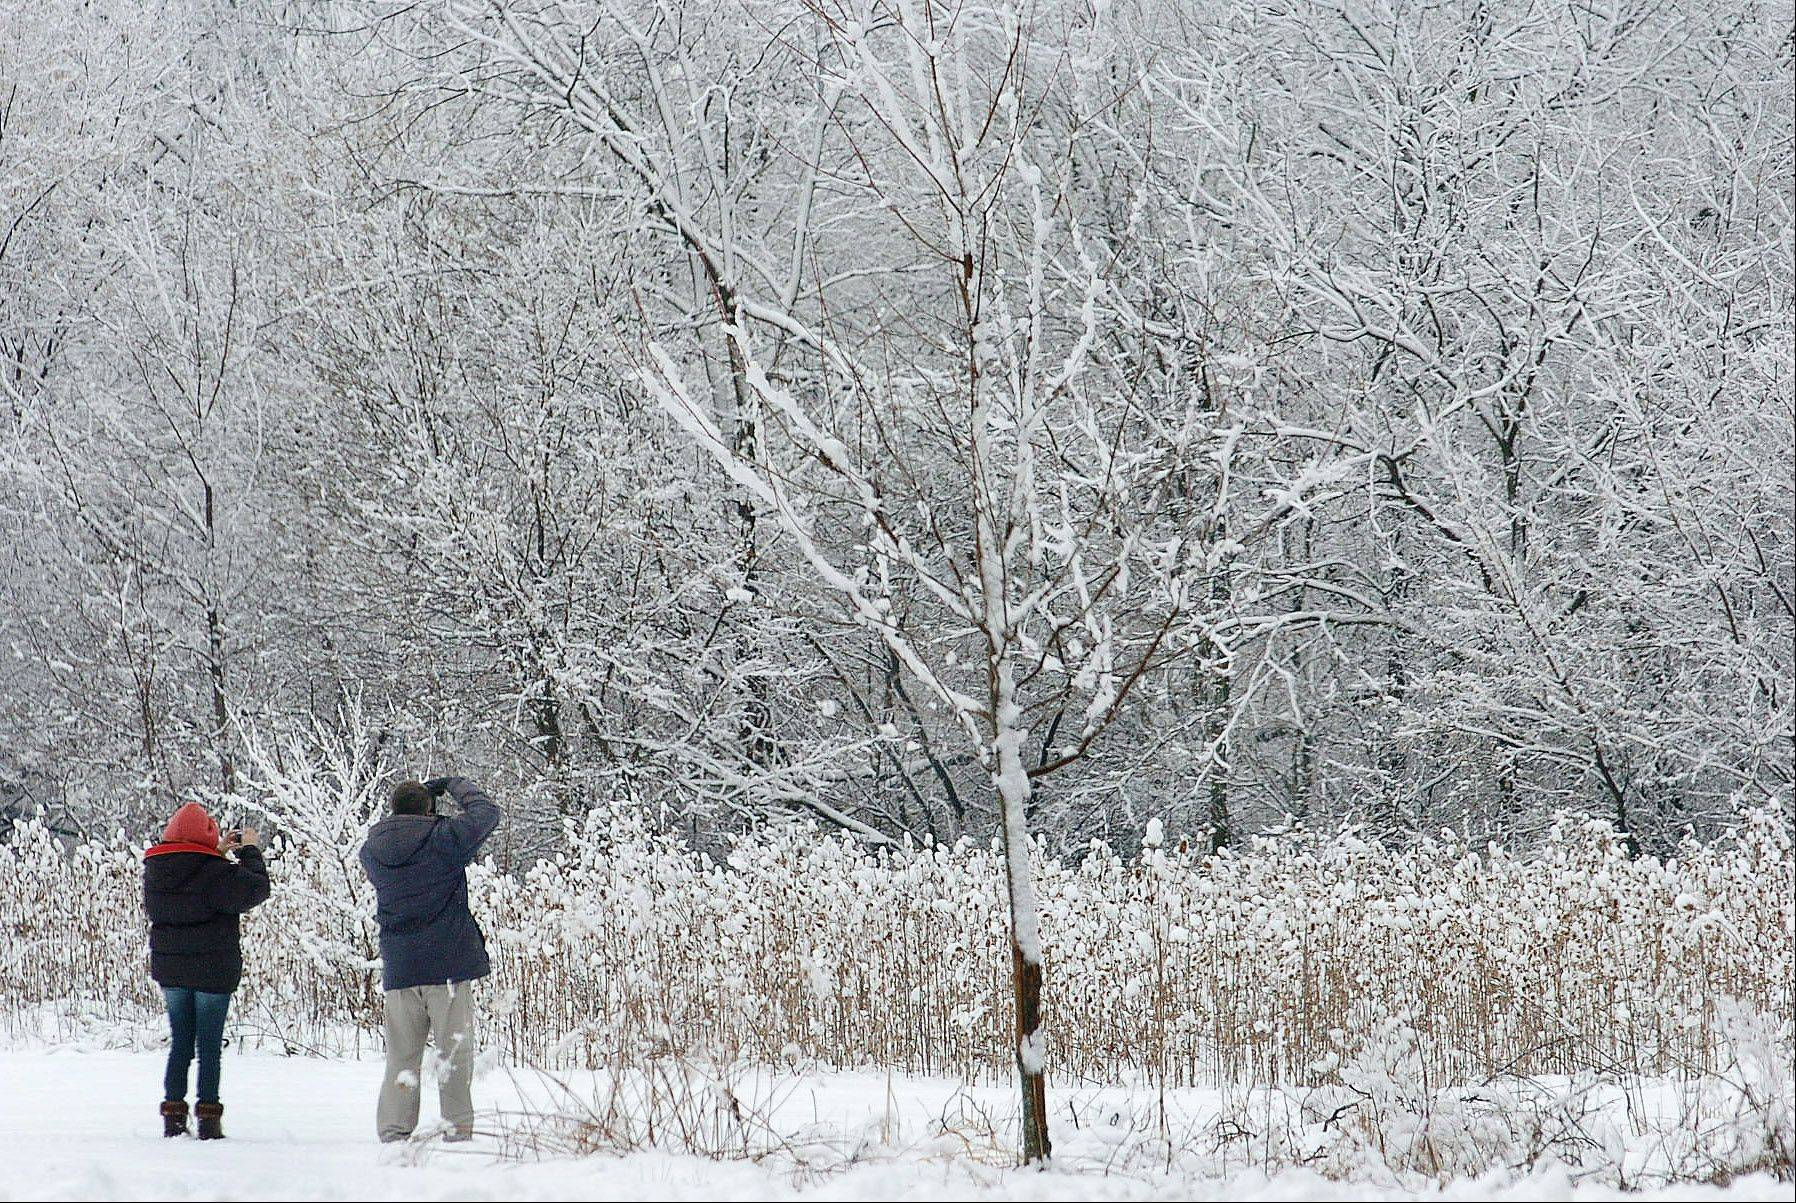 A couple stops to photograph some trees Friday in Busse Woods near Elk Grove Village. Amateur photographers were out in droves capturing images of the picturesque snow formations after the overnight snowfall.